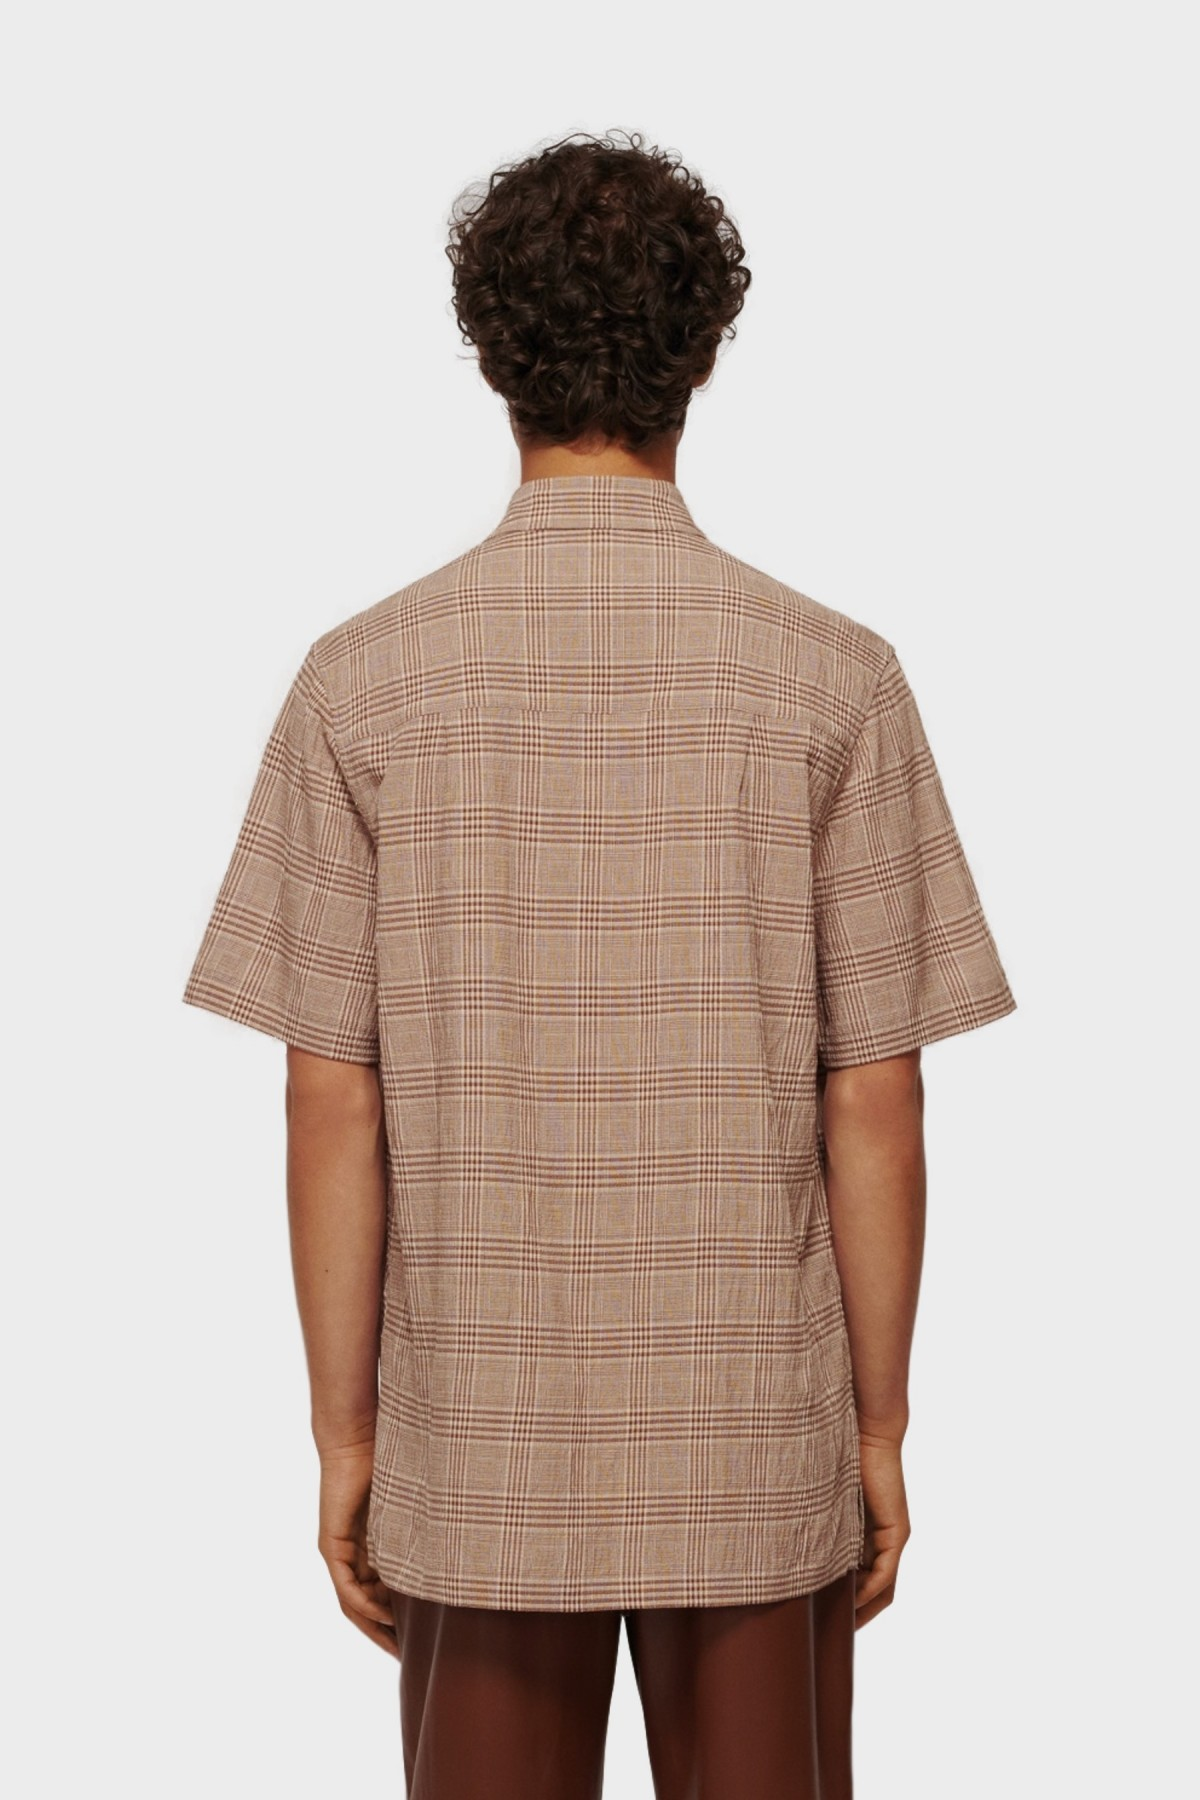 Nanushka Adam Gaze SS Shirt  in Gaze Check